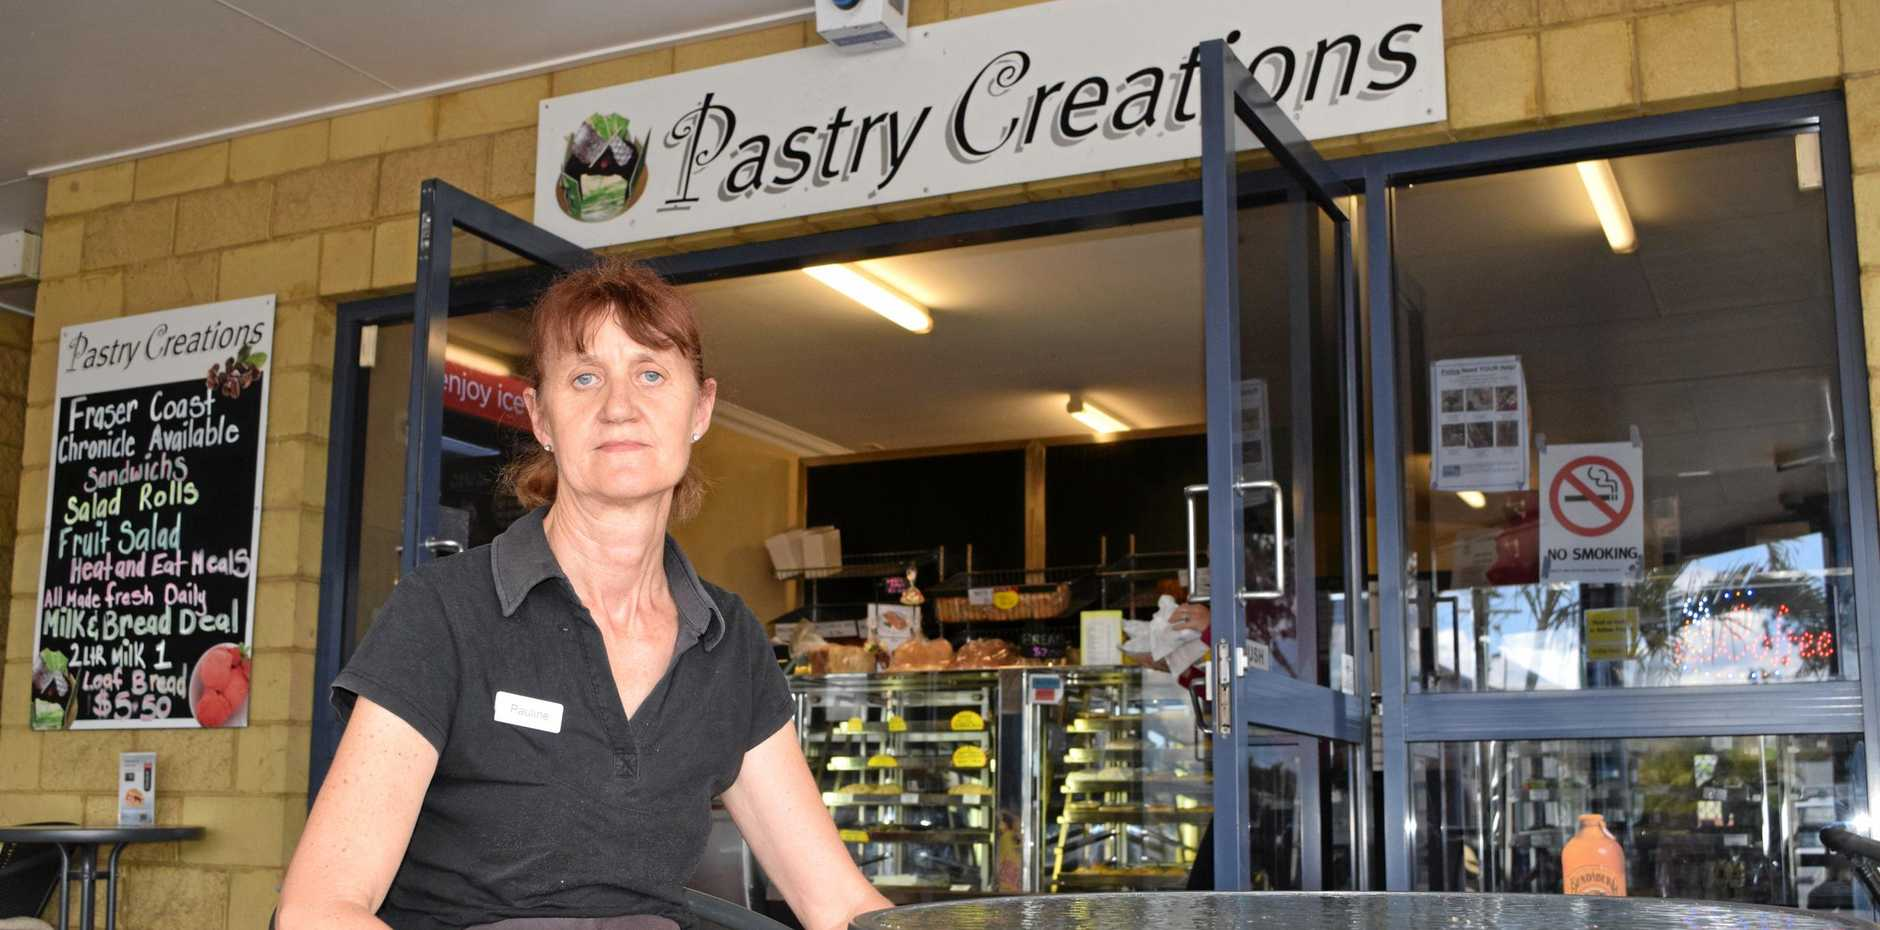 UNHAPPY ROADWORKS: Pauline Mowat, who works at Tinana's Pastry Creations, isn't happy with the proposed roadworks.